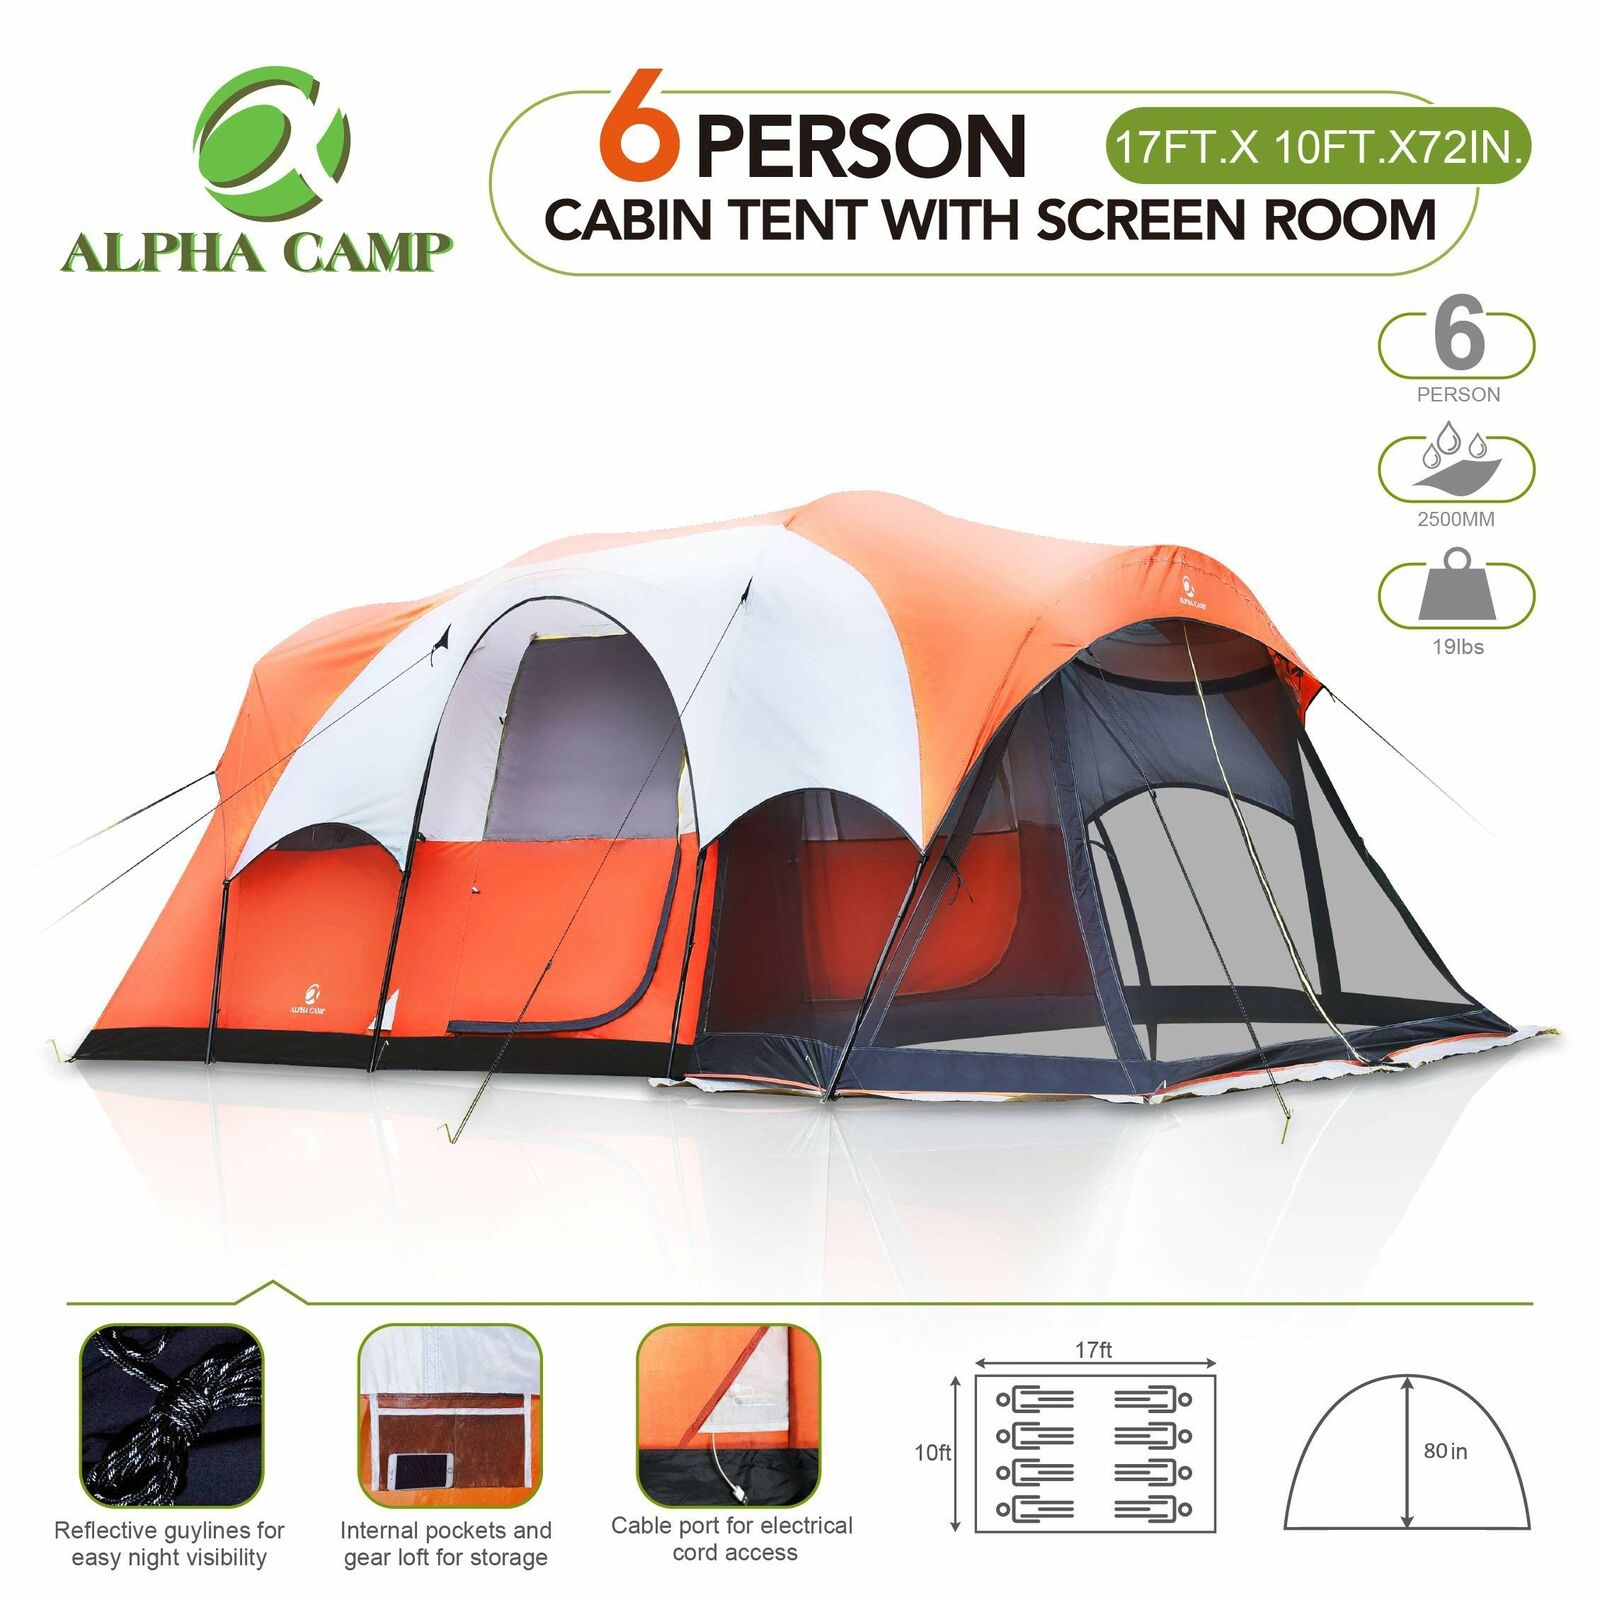 ALPHA CAMP 6 Person Family Tent with Screen Room Cabin, 17' x 9', orange